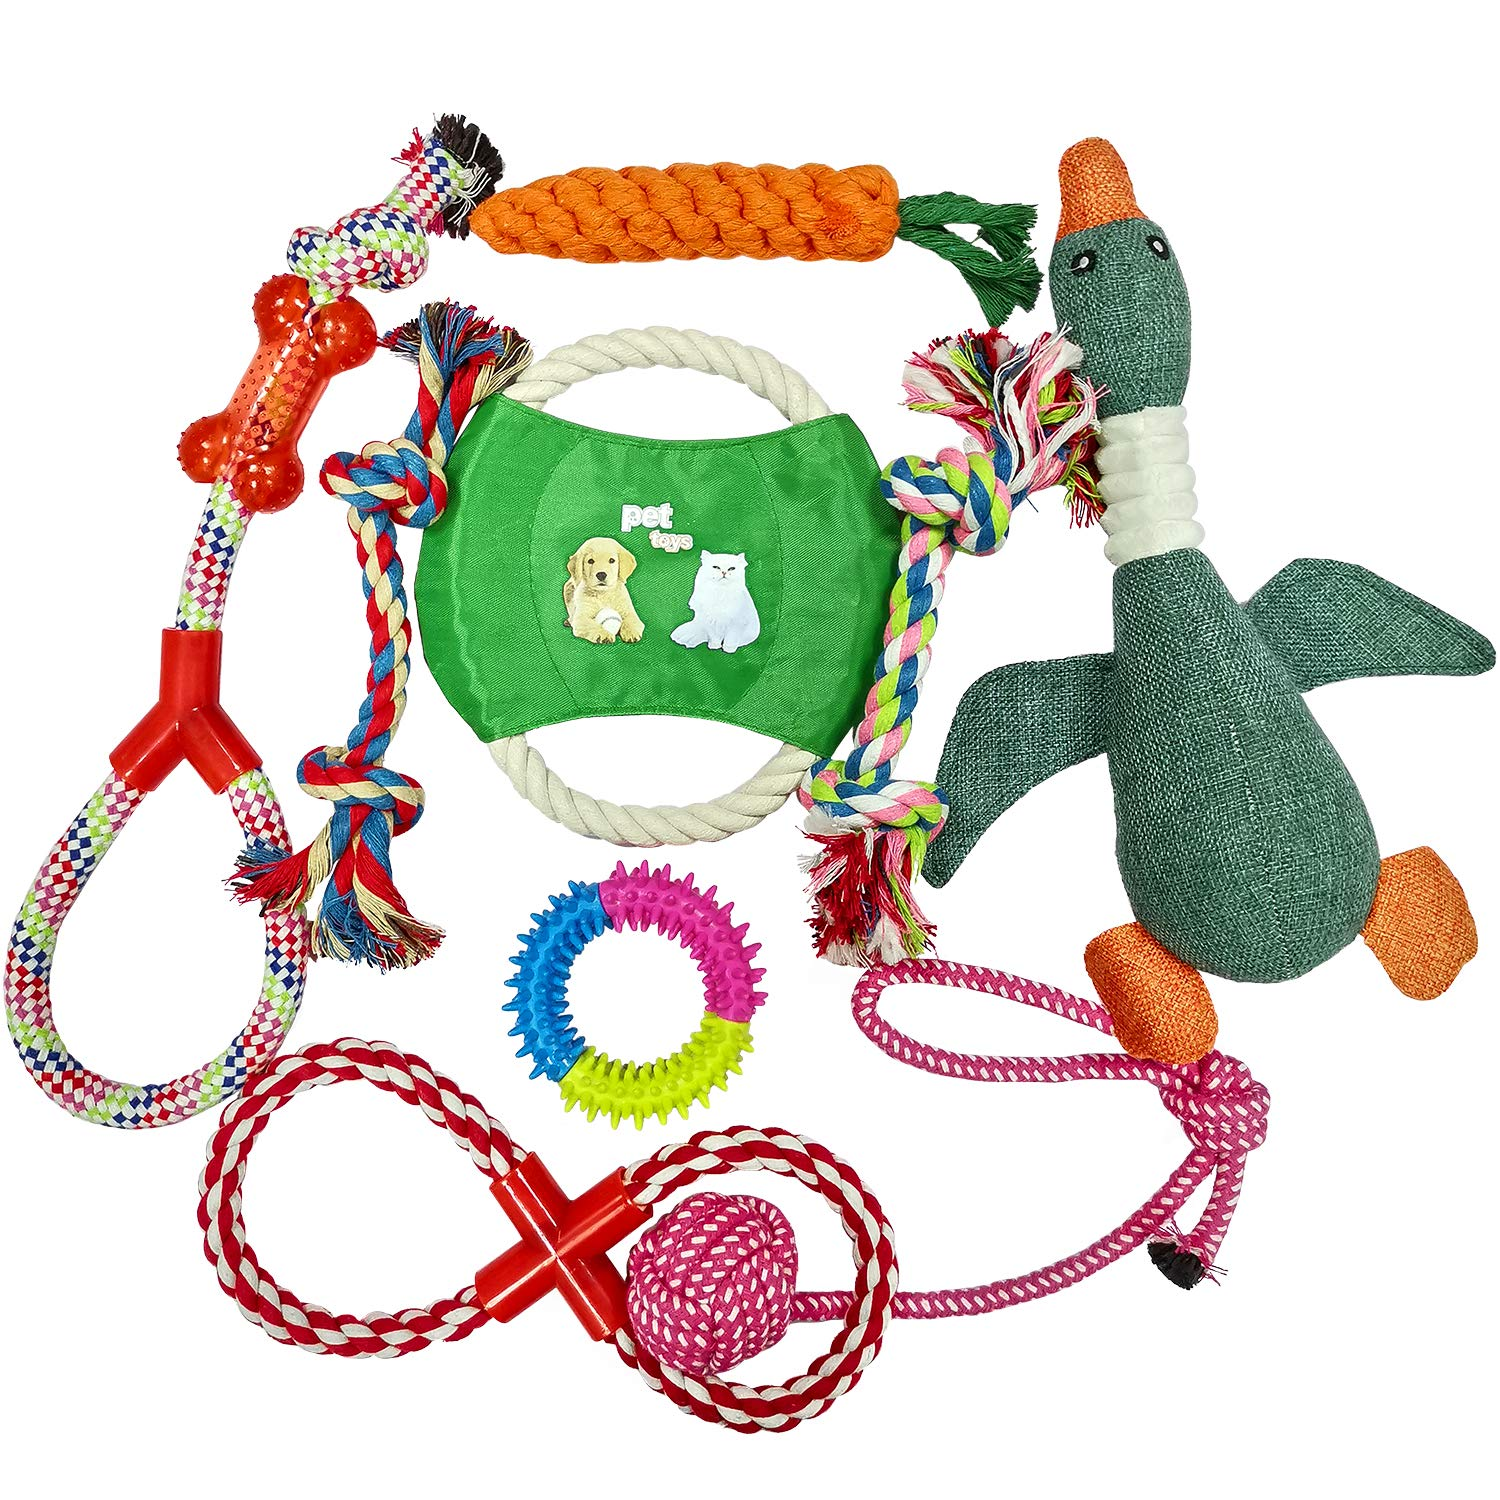 Mozart Dog Toys for Aggressive Chewers-Pet Toys for Dogs Indestructible-Dog Chews Toys-Best Teething Toys for Puppies-Dog Toys for Boredom-Dog Rope Toy-Puppy Toys-Dog Toys Multi Pack (Dog Toys)